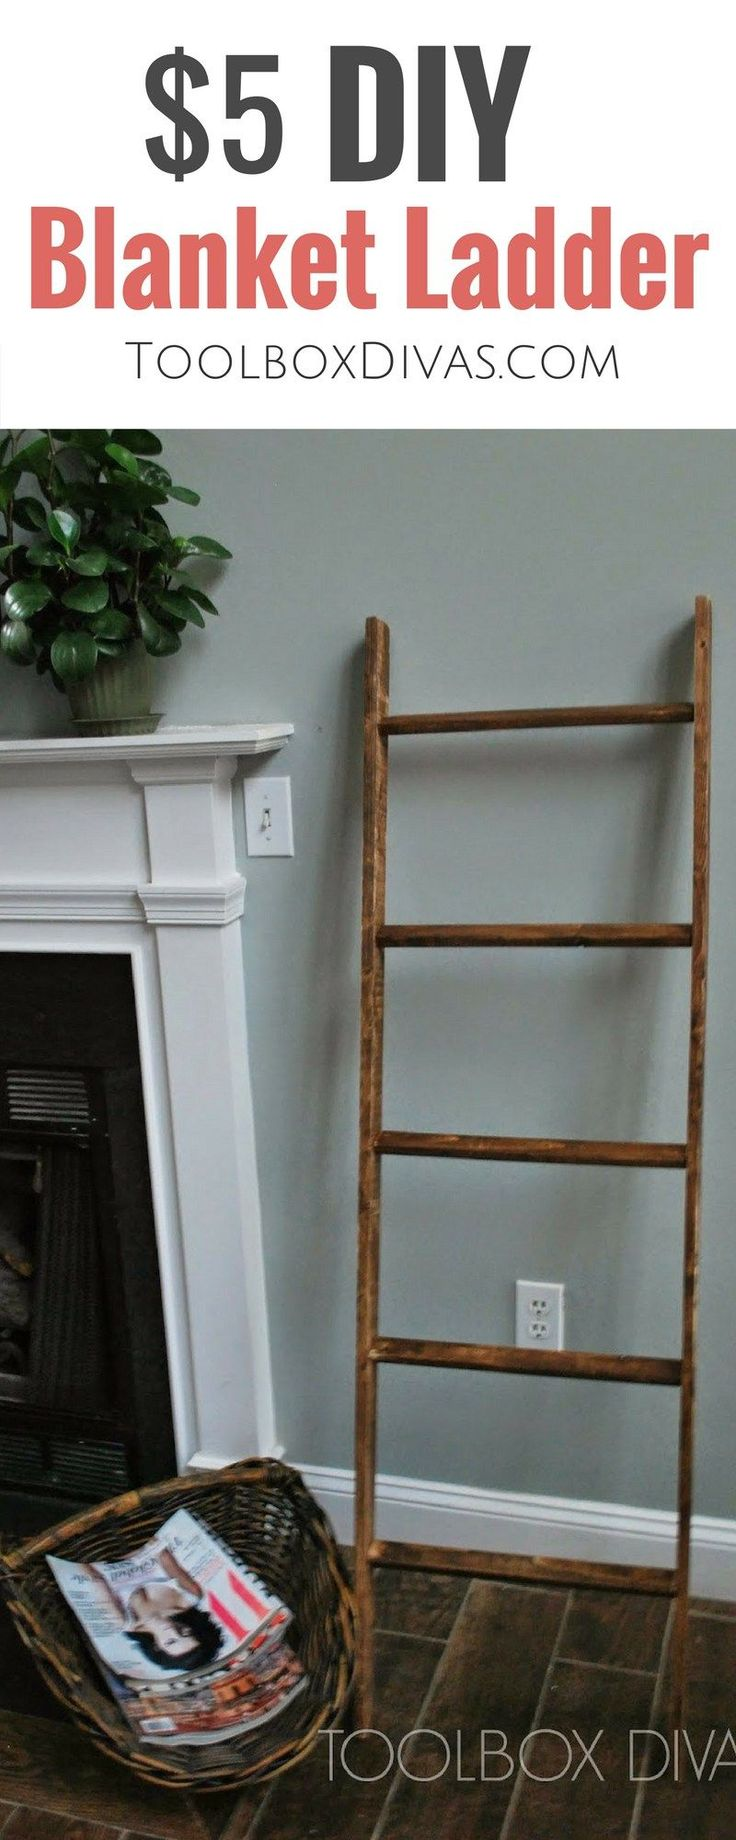 Cheap and inexpensive $5 Pottery Barn Knockoff. Learn how to tutorial/DIY on making a throw blanket ladder. Perfect for a baby's nursery. free plans woodworking #Toolboxdivas @toolboxdivas #blankets #ladder #potterybarn #cozy #winter #blanketthrow #SimpleWoodworkingProjectsFreePlans